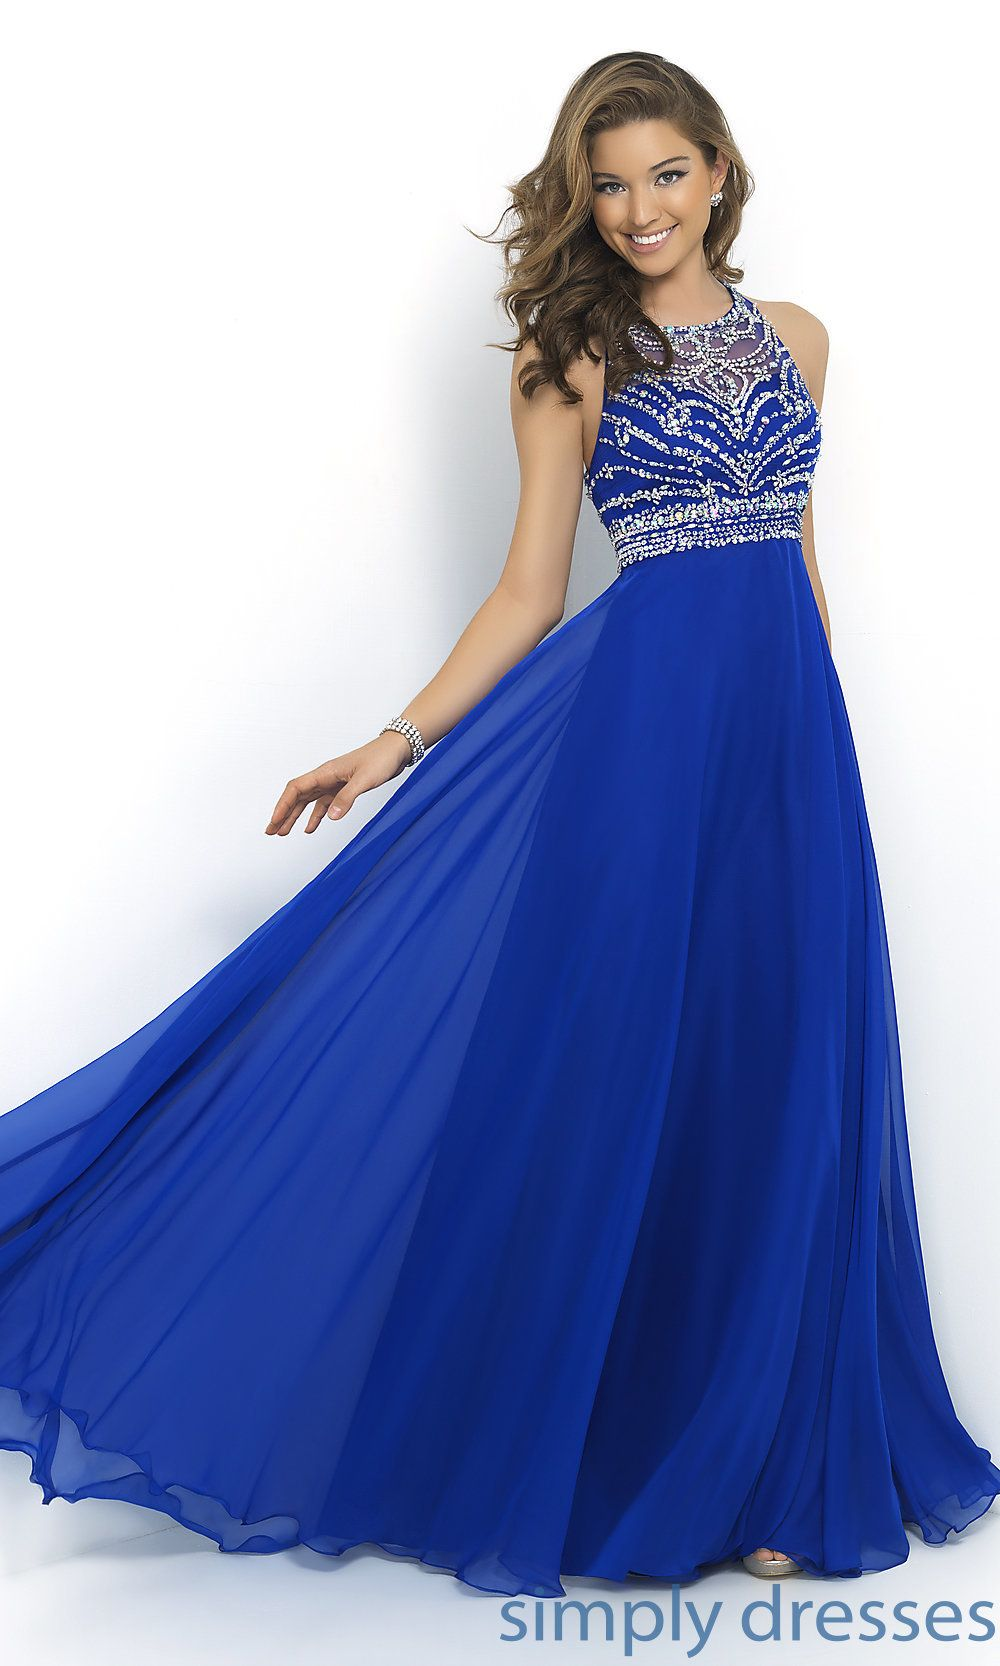 Blush high neck long gown prom pinterest prom long prom